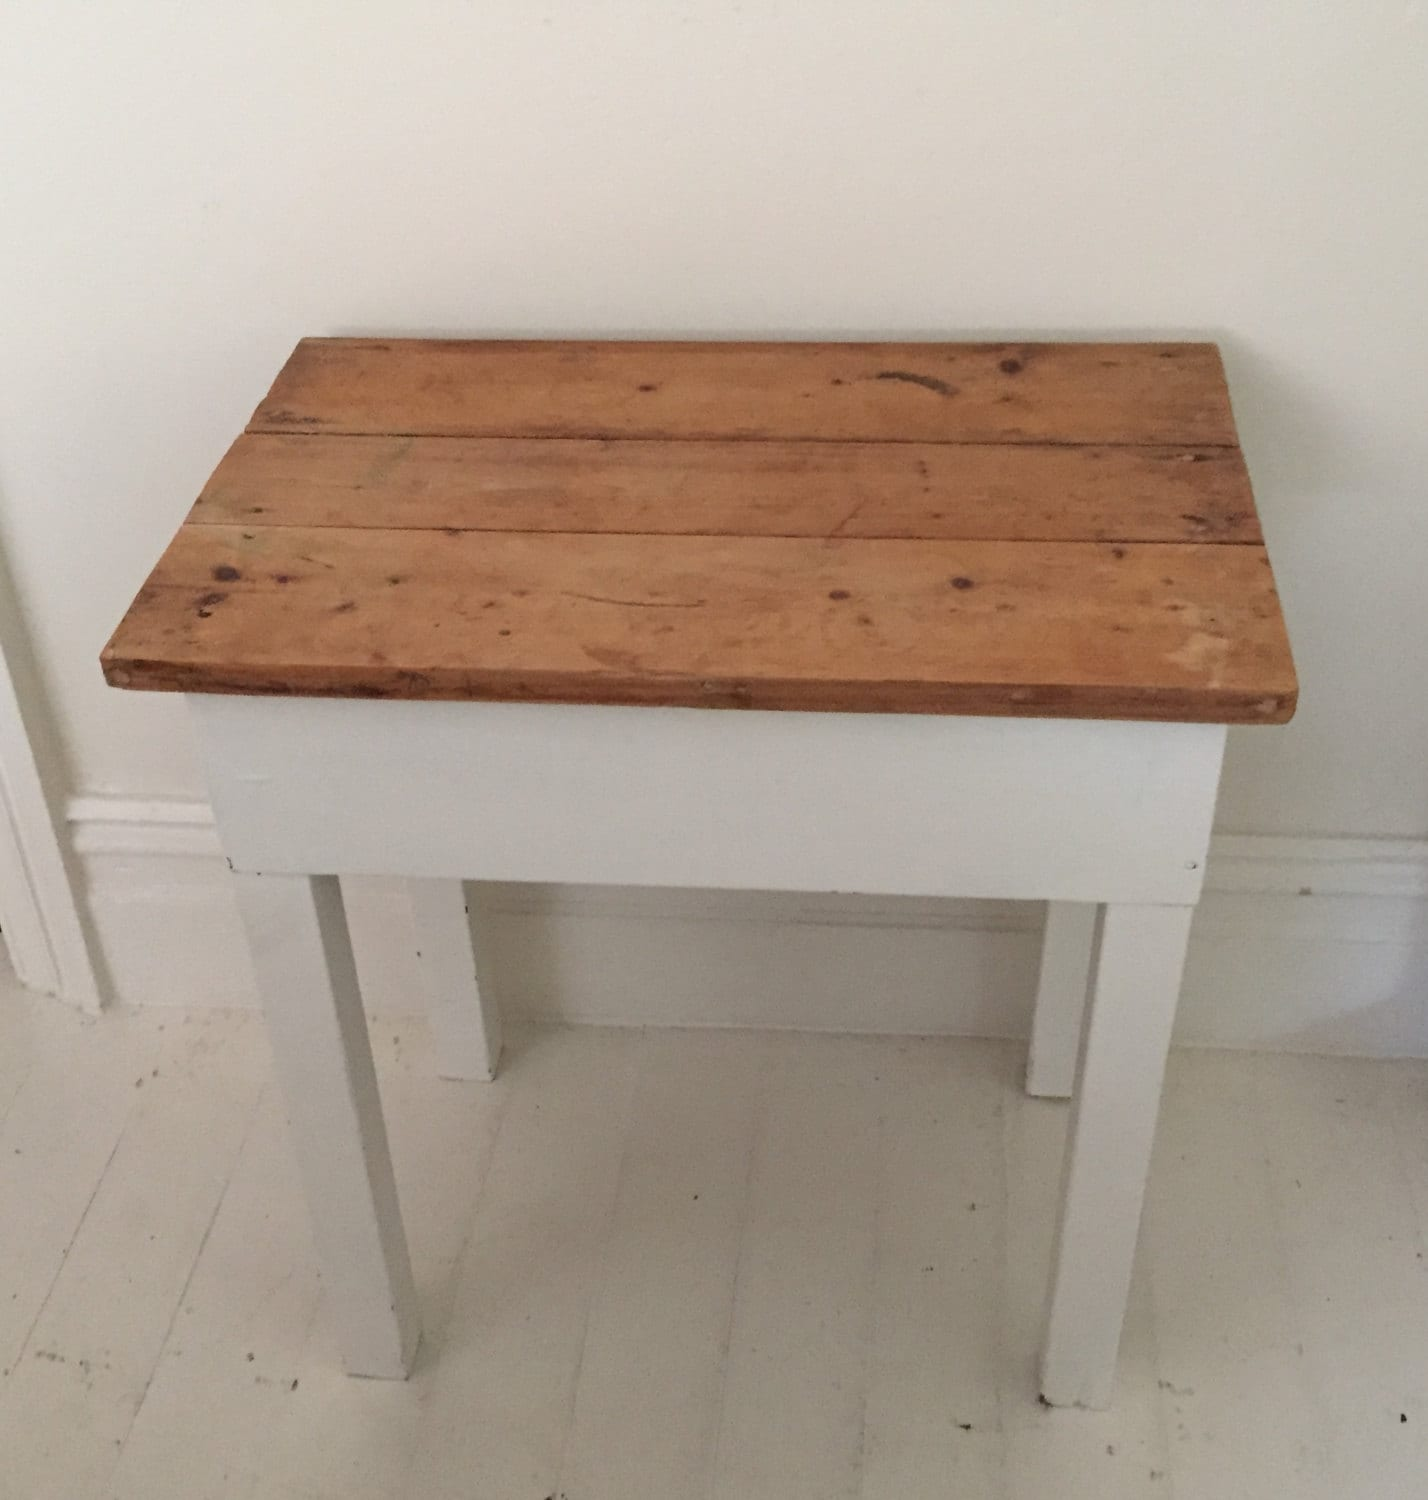 Small Decorative End Tables Vintage Wooden Small Table My Vintage Home Vintage